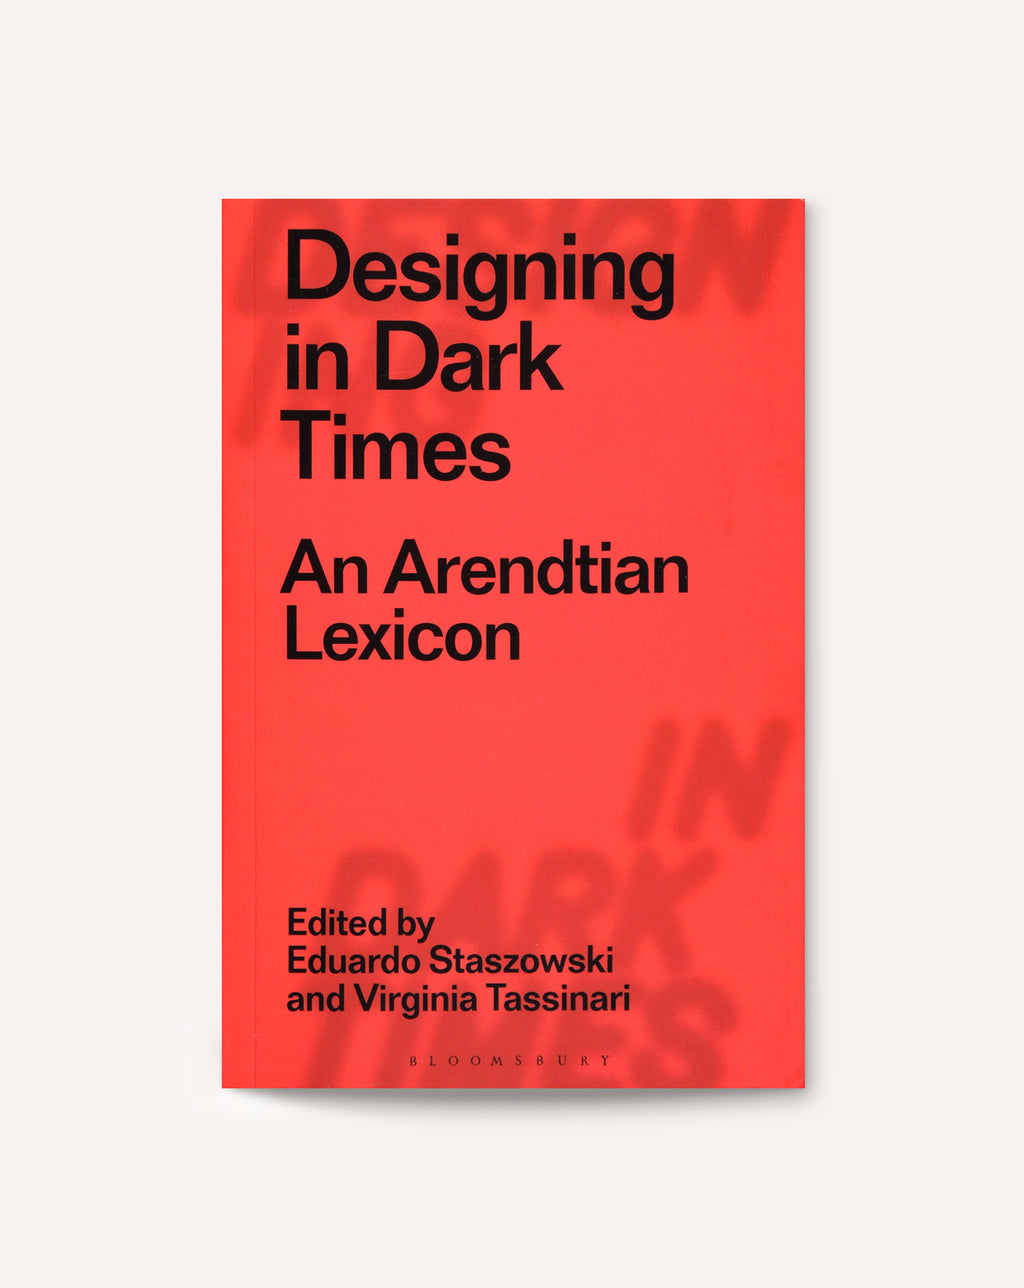 Designing in Dark Times